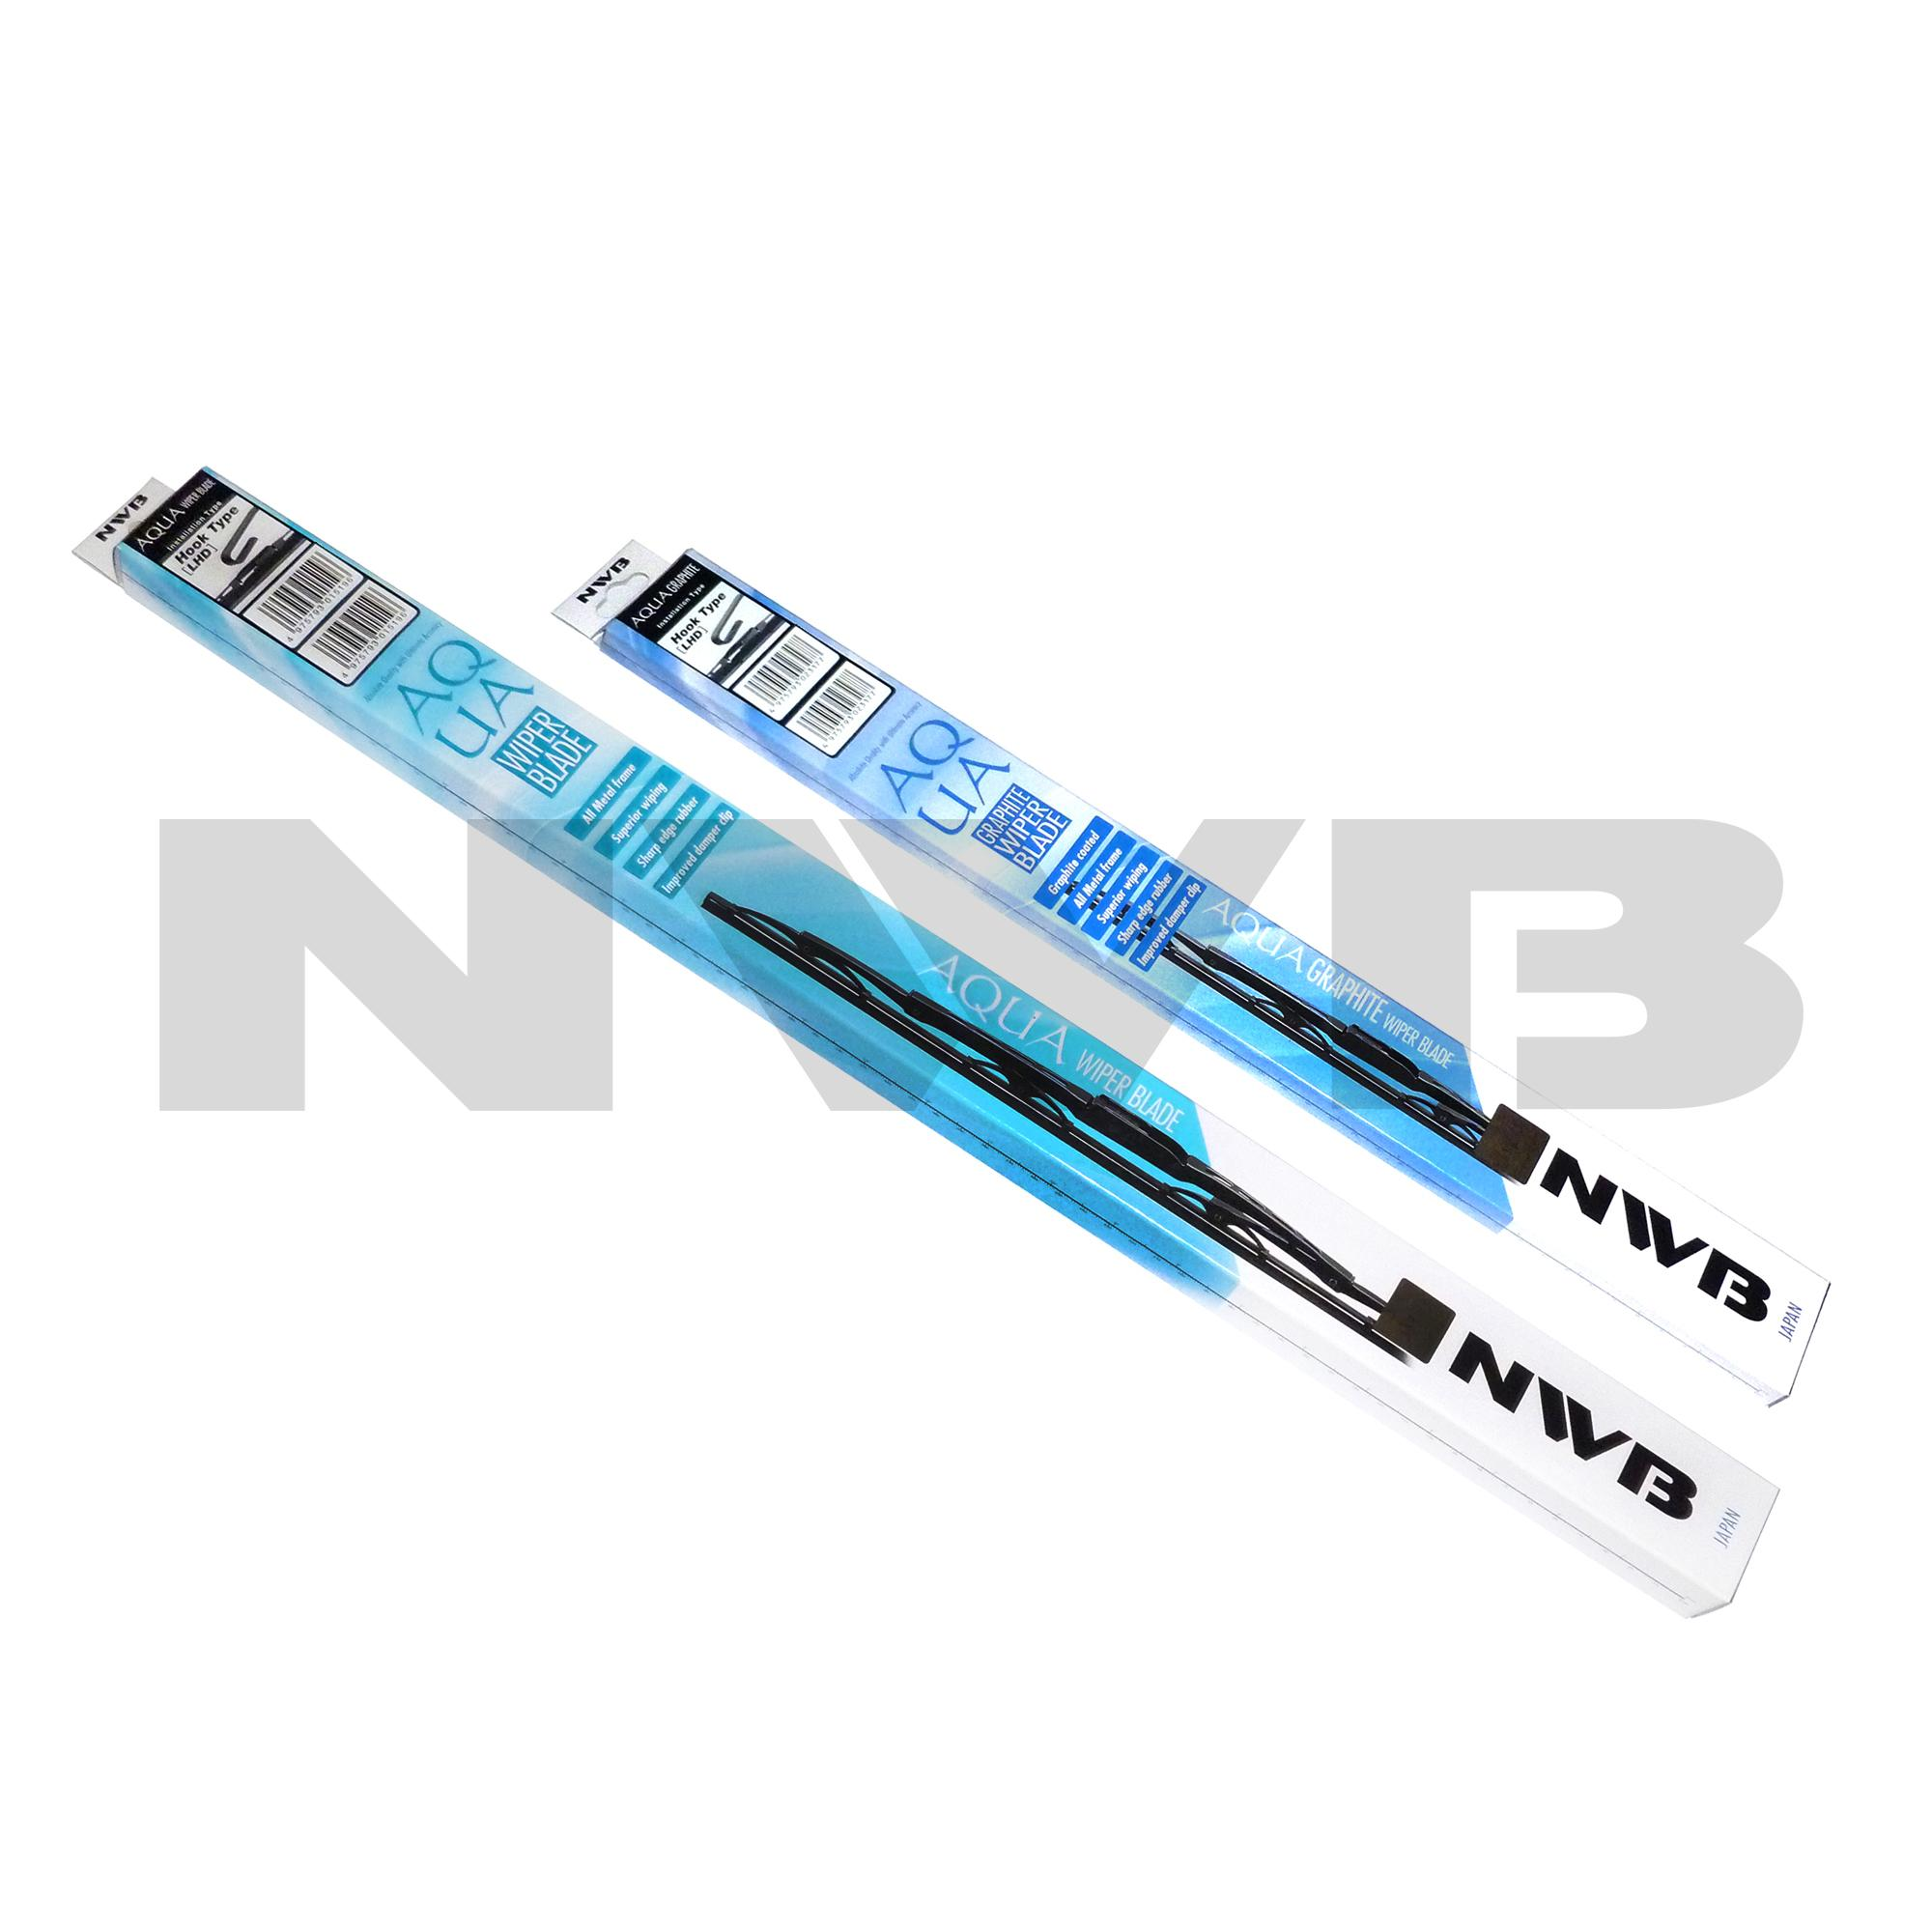 NWB AQUA Wiper Blade for Toyota Vios 2008-2016 - (SET)